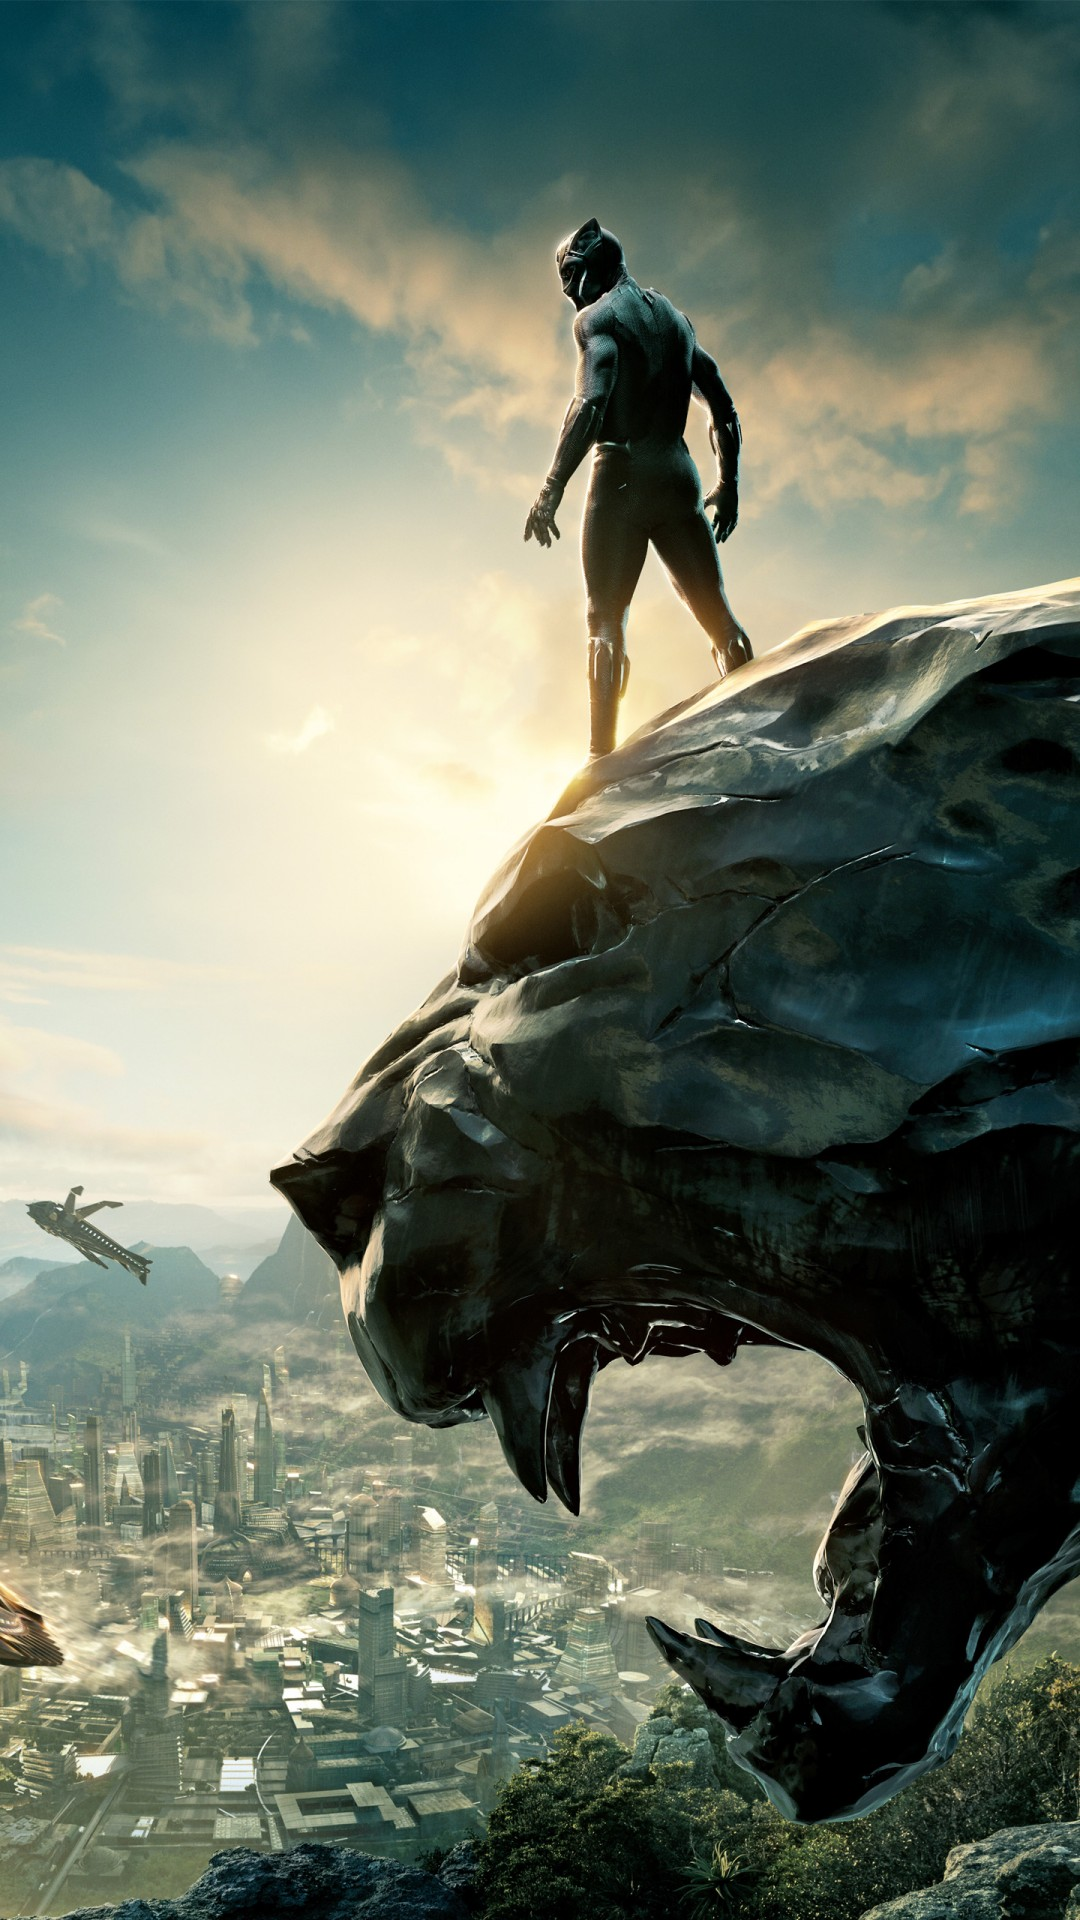 Black Panther 4k Wallpaper For Mobile 1080x1920 Wallpaper Teahub Io